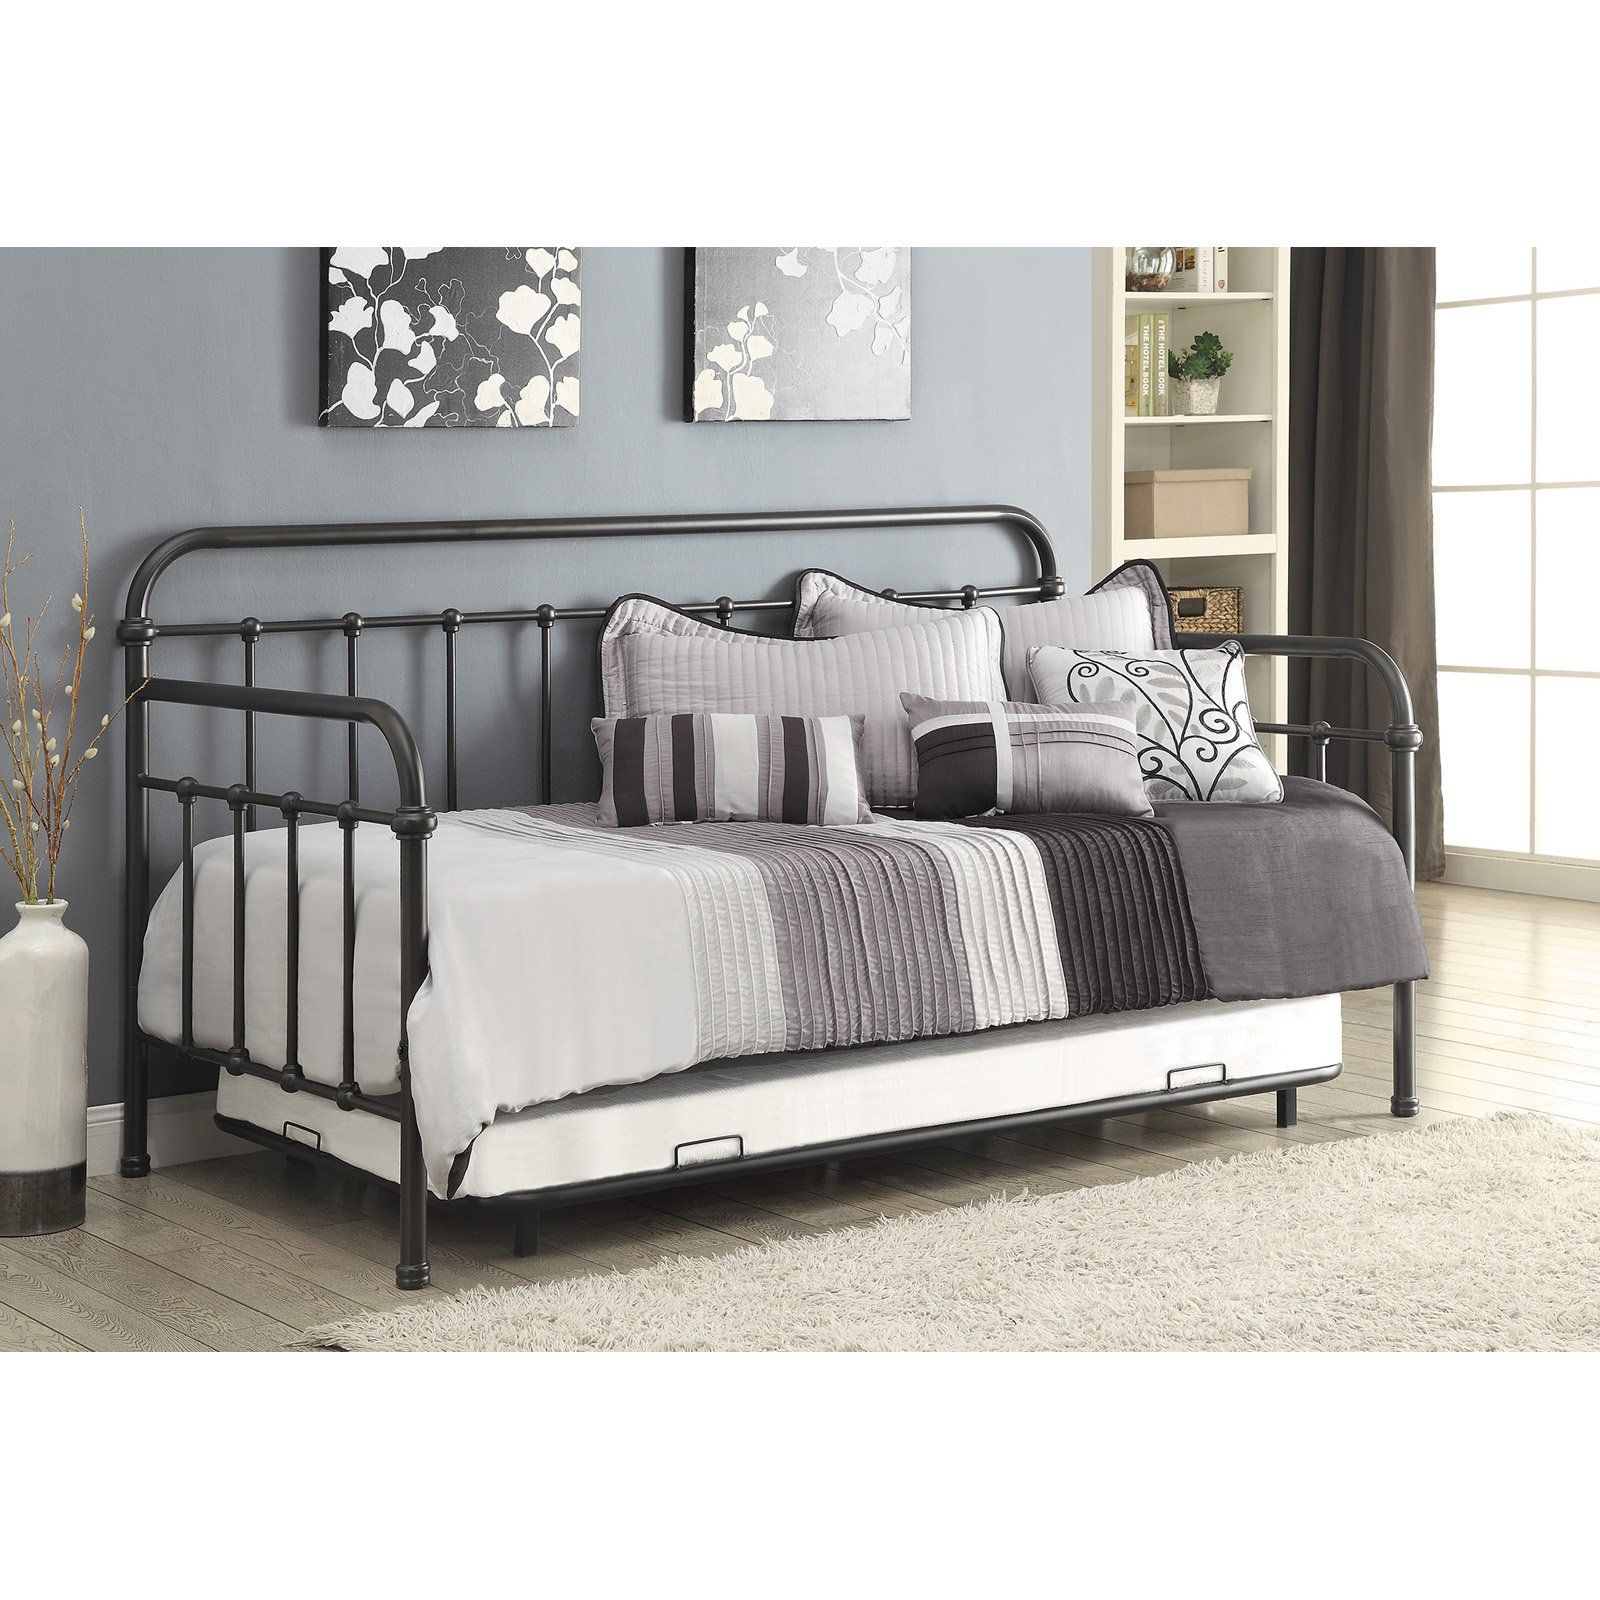 Mercer Wrought Iron Daybed Iron Daybeds Metal Day Beds Daybed